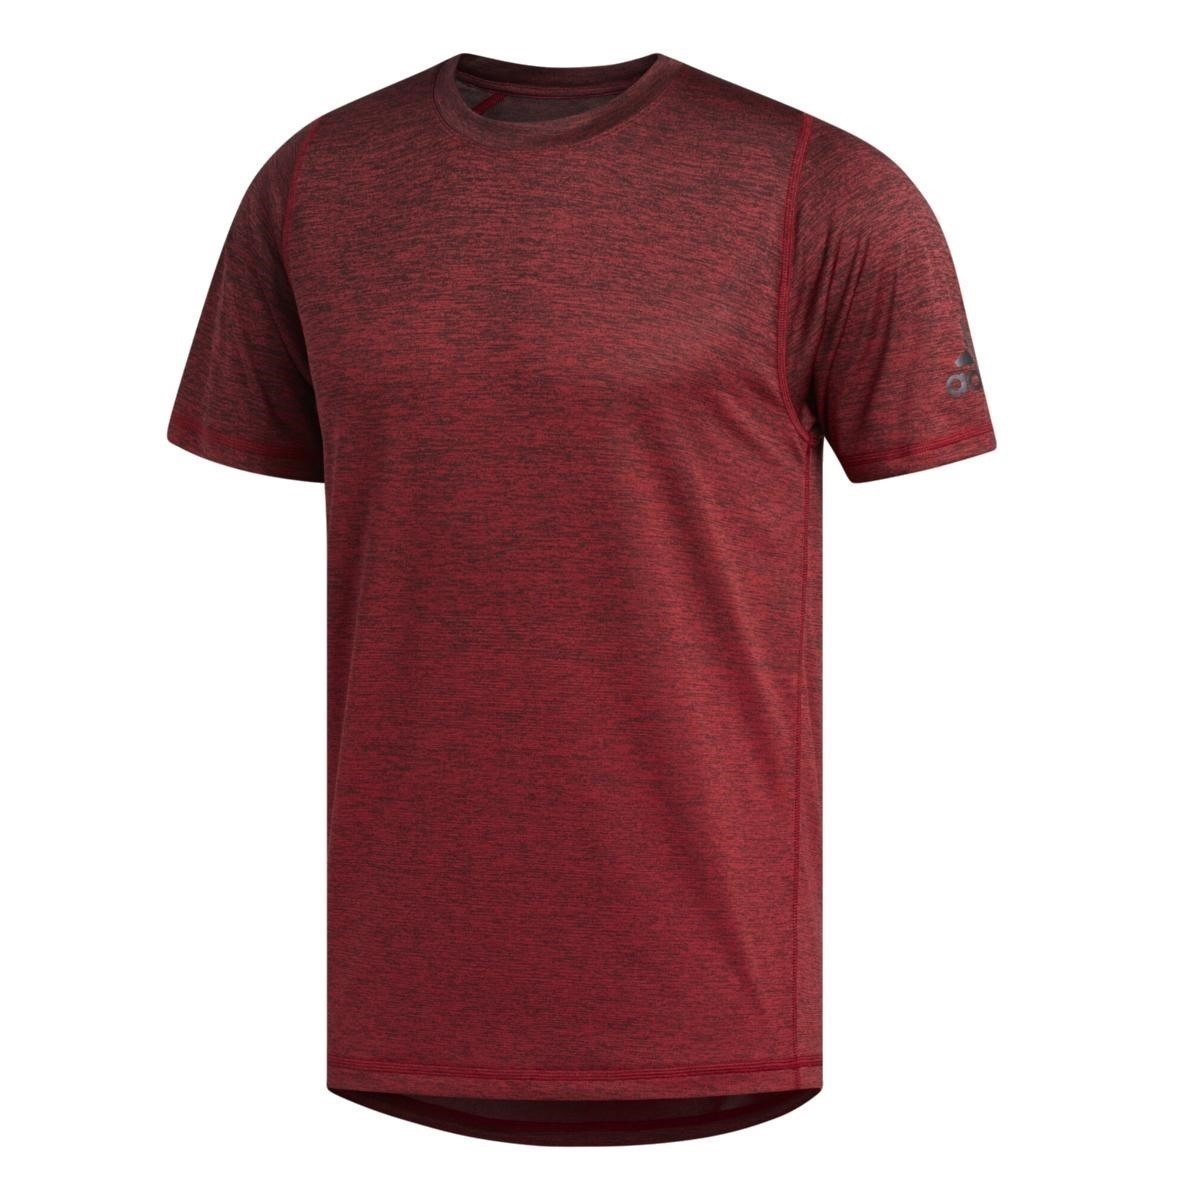 Adidas Freelift 360 Gradient Graphic T-Shirt Kırmızı